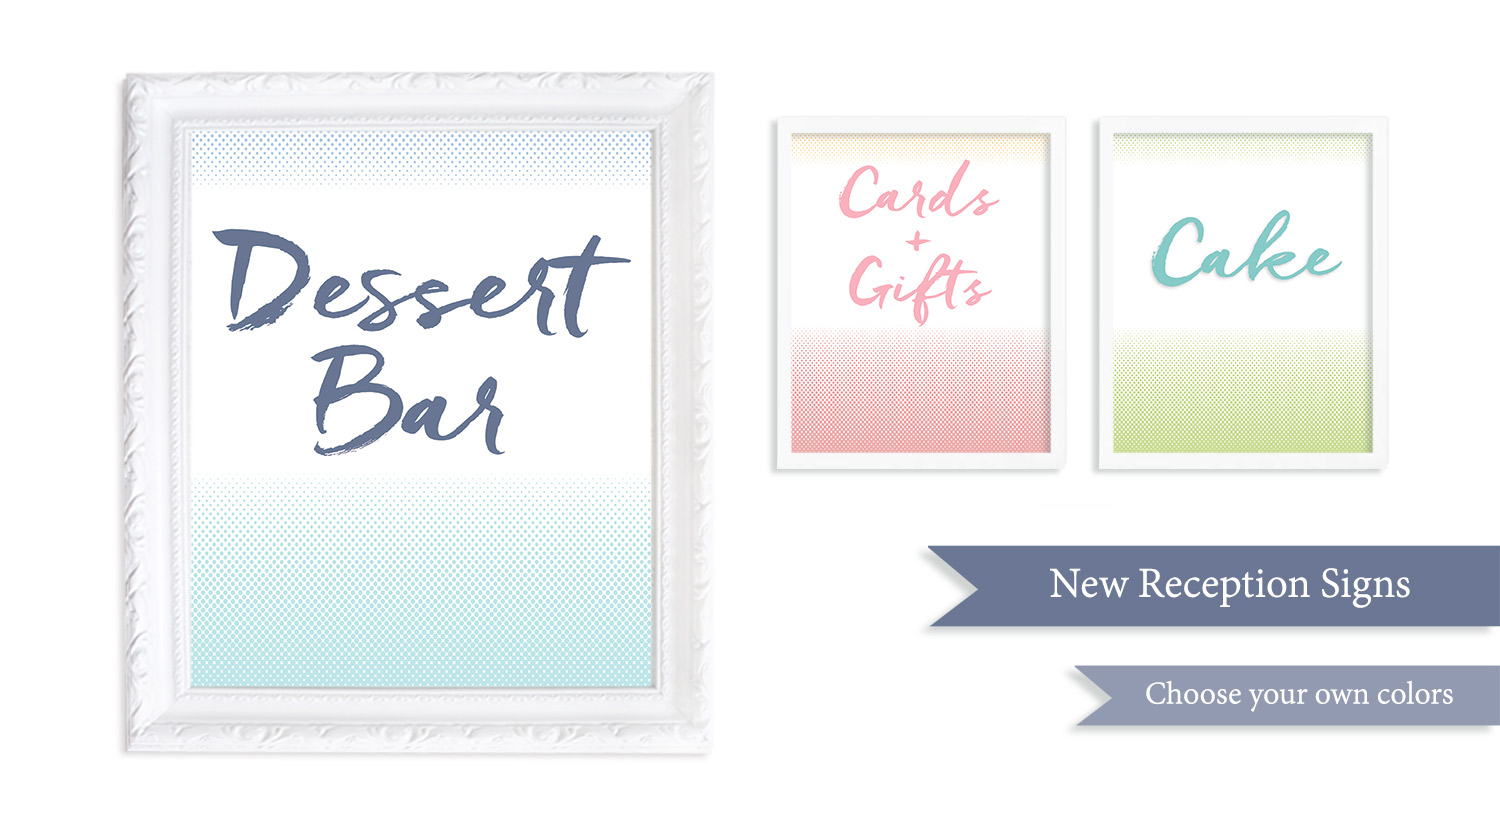 NEW RECEPTION SIGNS - The BLiSS COLLECTION